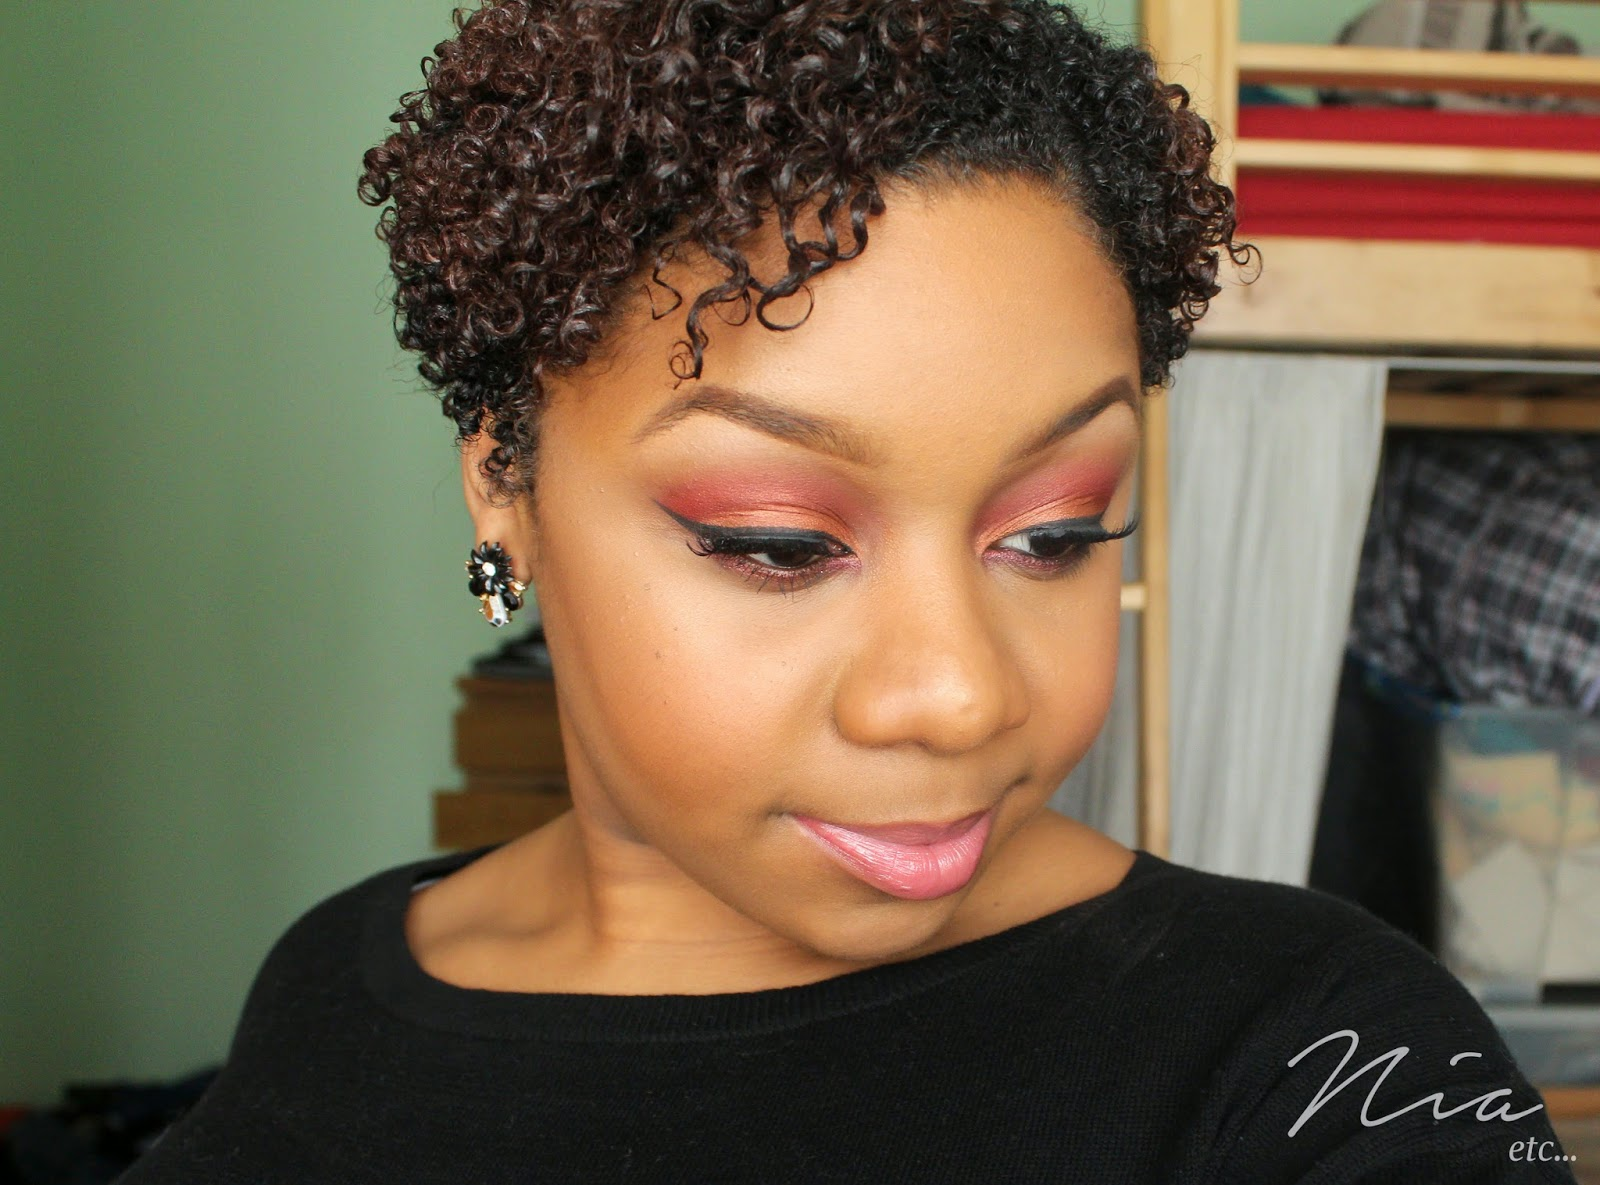 Summertime Orange and Red MakeUp Look 4